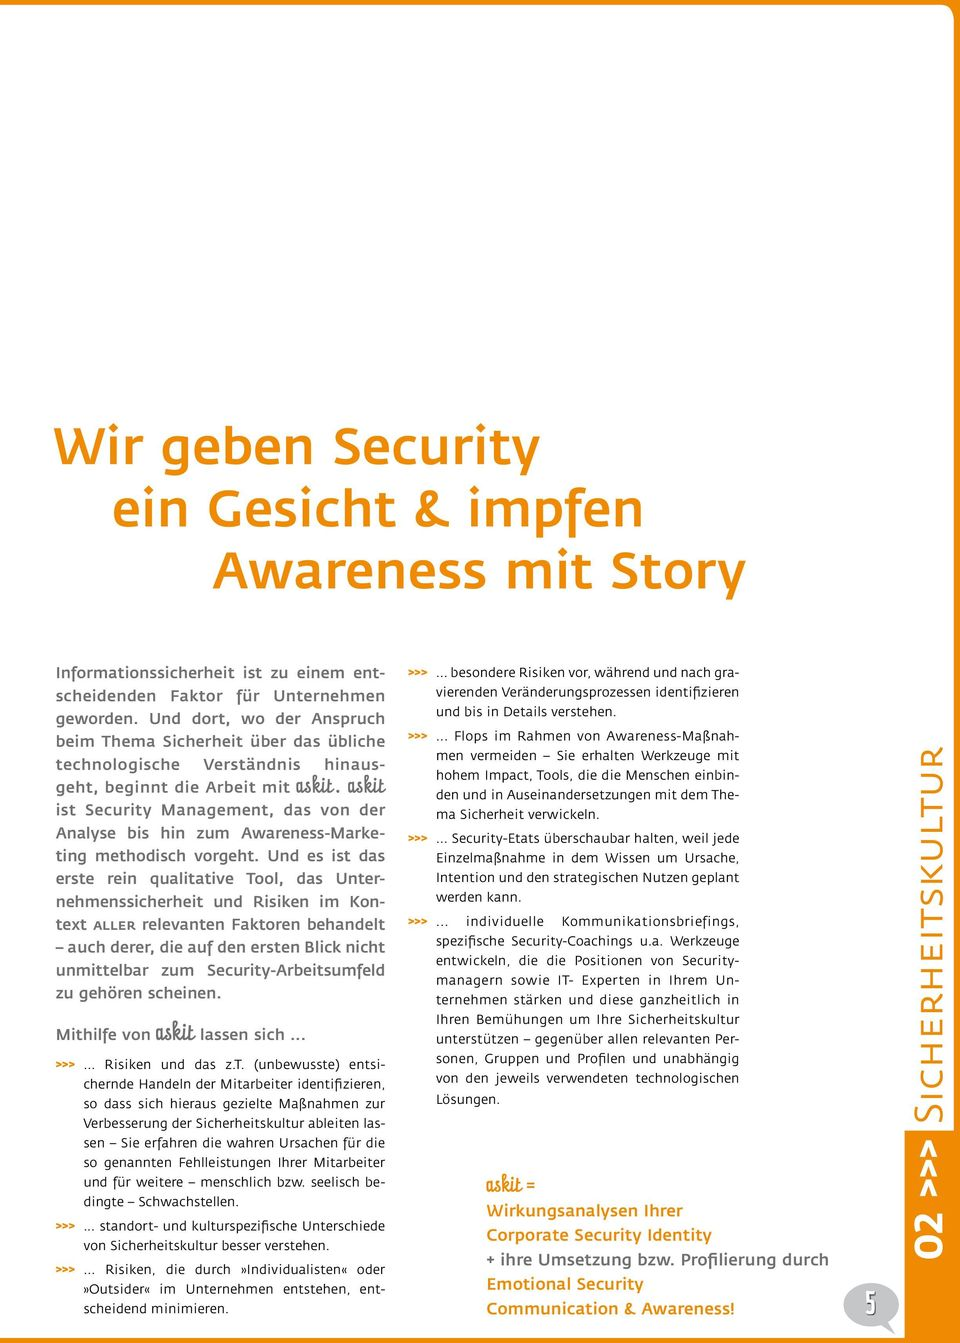 askit ist Security Management, das von der Analyse bis hin zum Awareness-Marketing methodisch vorgeht.